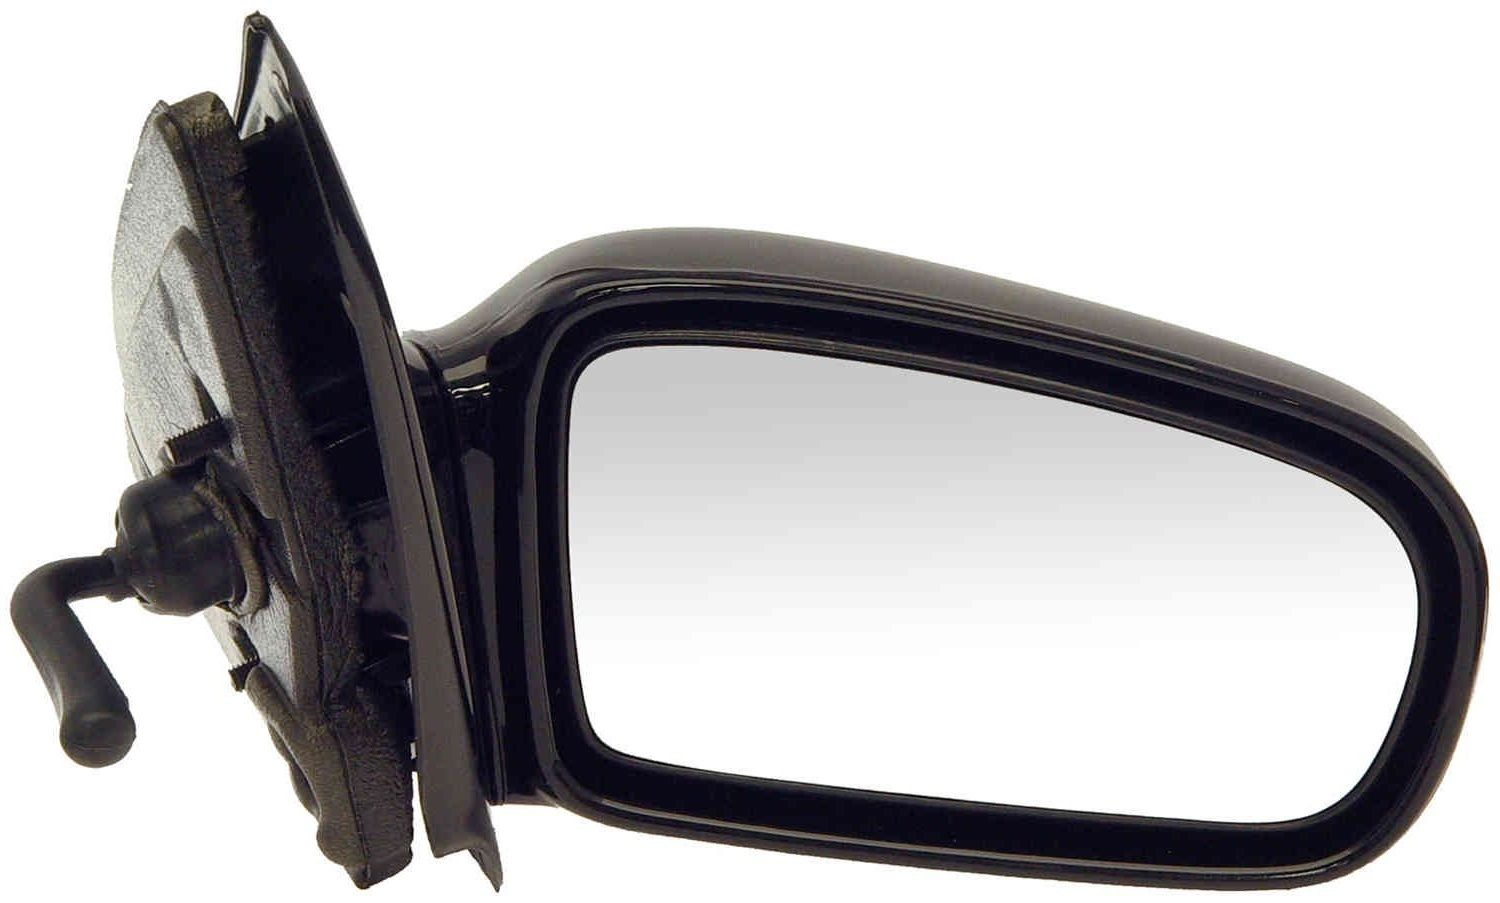 USミラー シボレーポンティアックRHの新しいミラー乗客の右側 New Mirror Passenger Right Side for a Chevy Pontiac RH With Lifetime Warranty